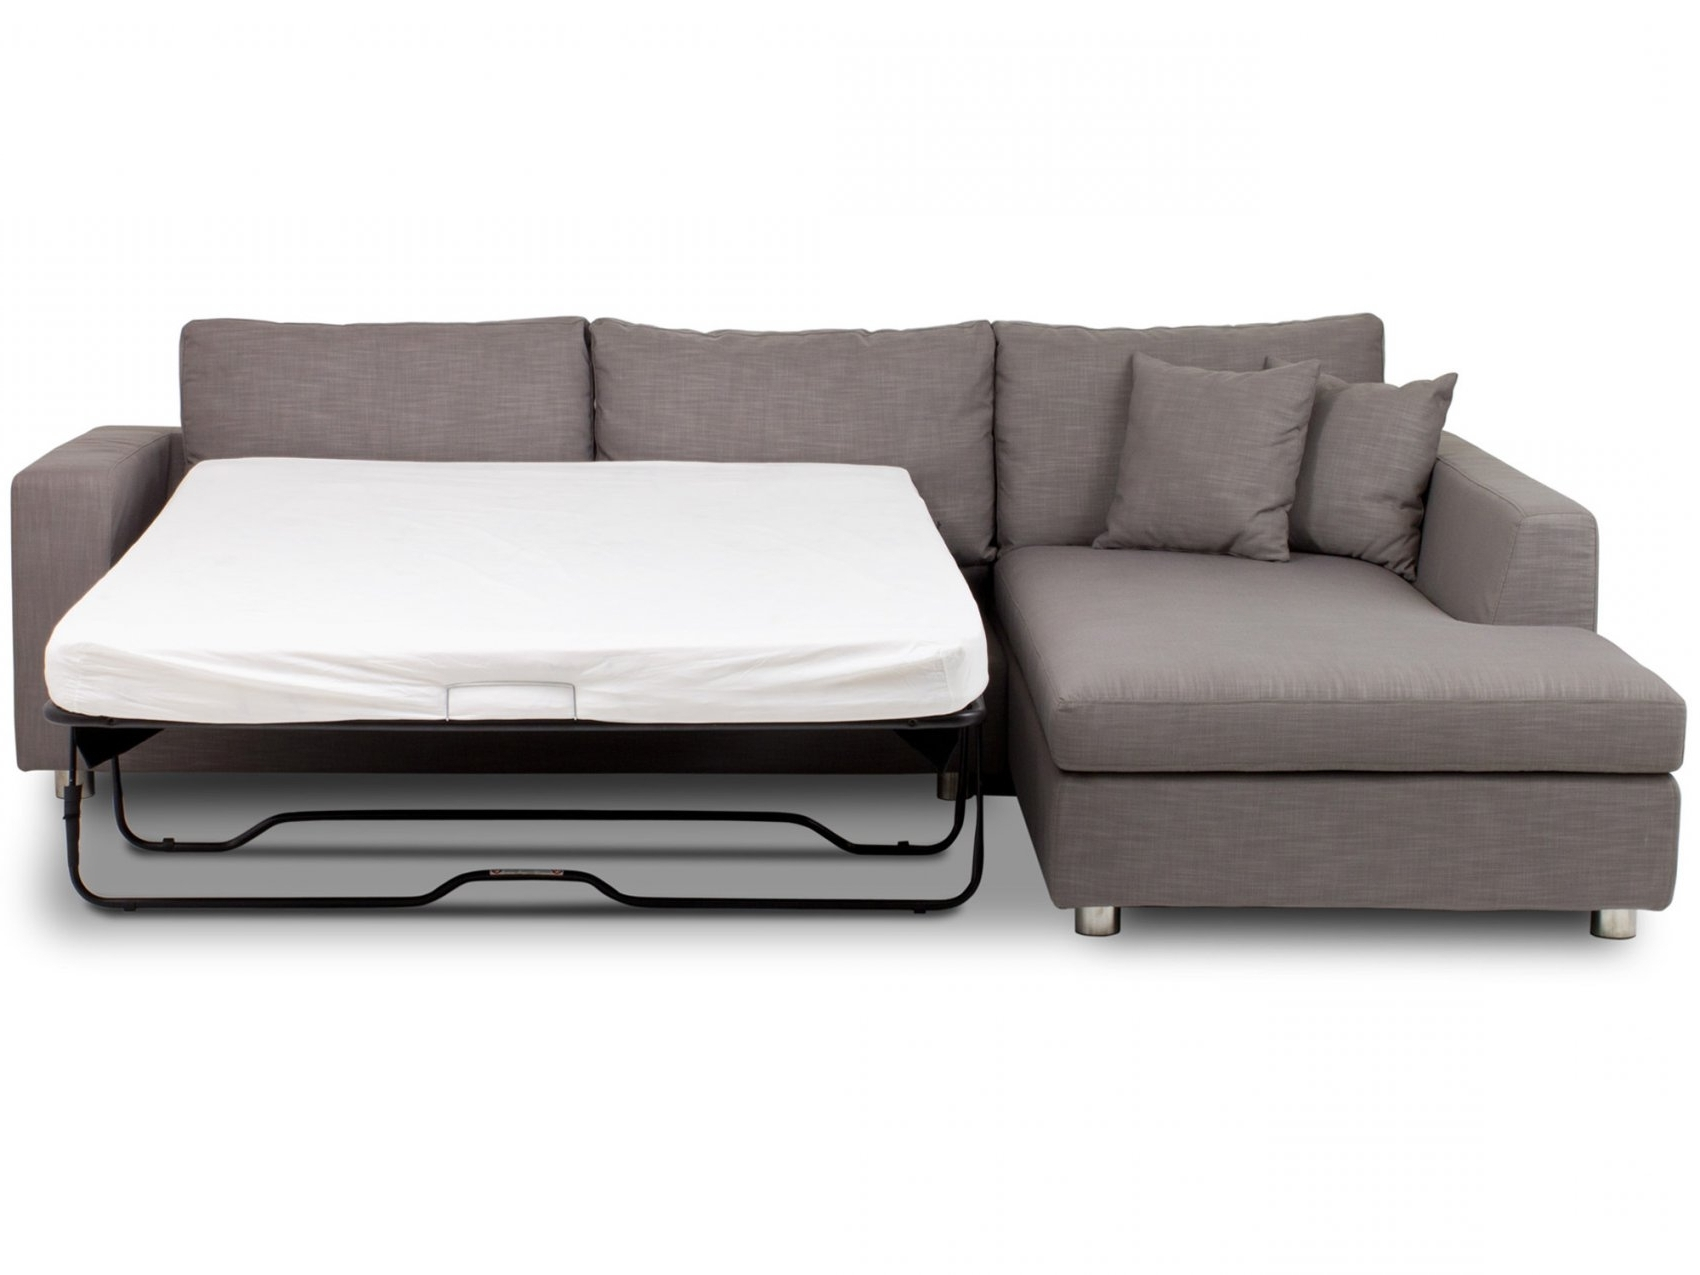 Recent Vivacious Chaise Sofa Bed With Softly Bed Foam For For Chaise Throughout Sleeper Chaise Lounges (View 10 of 15)